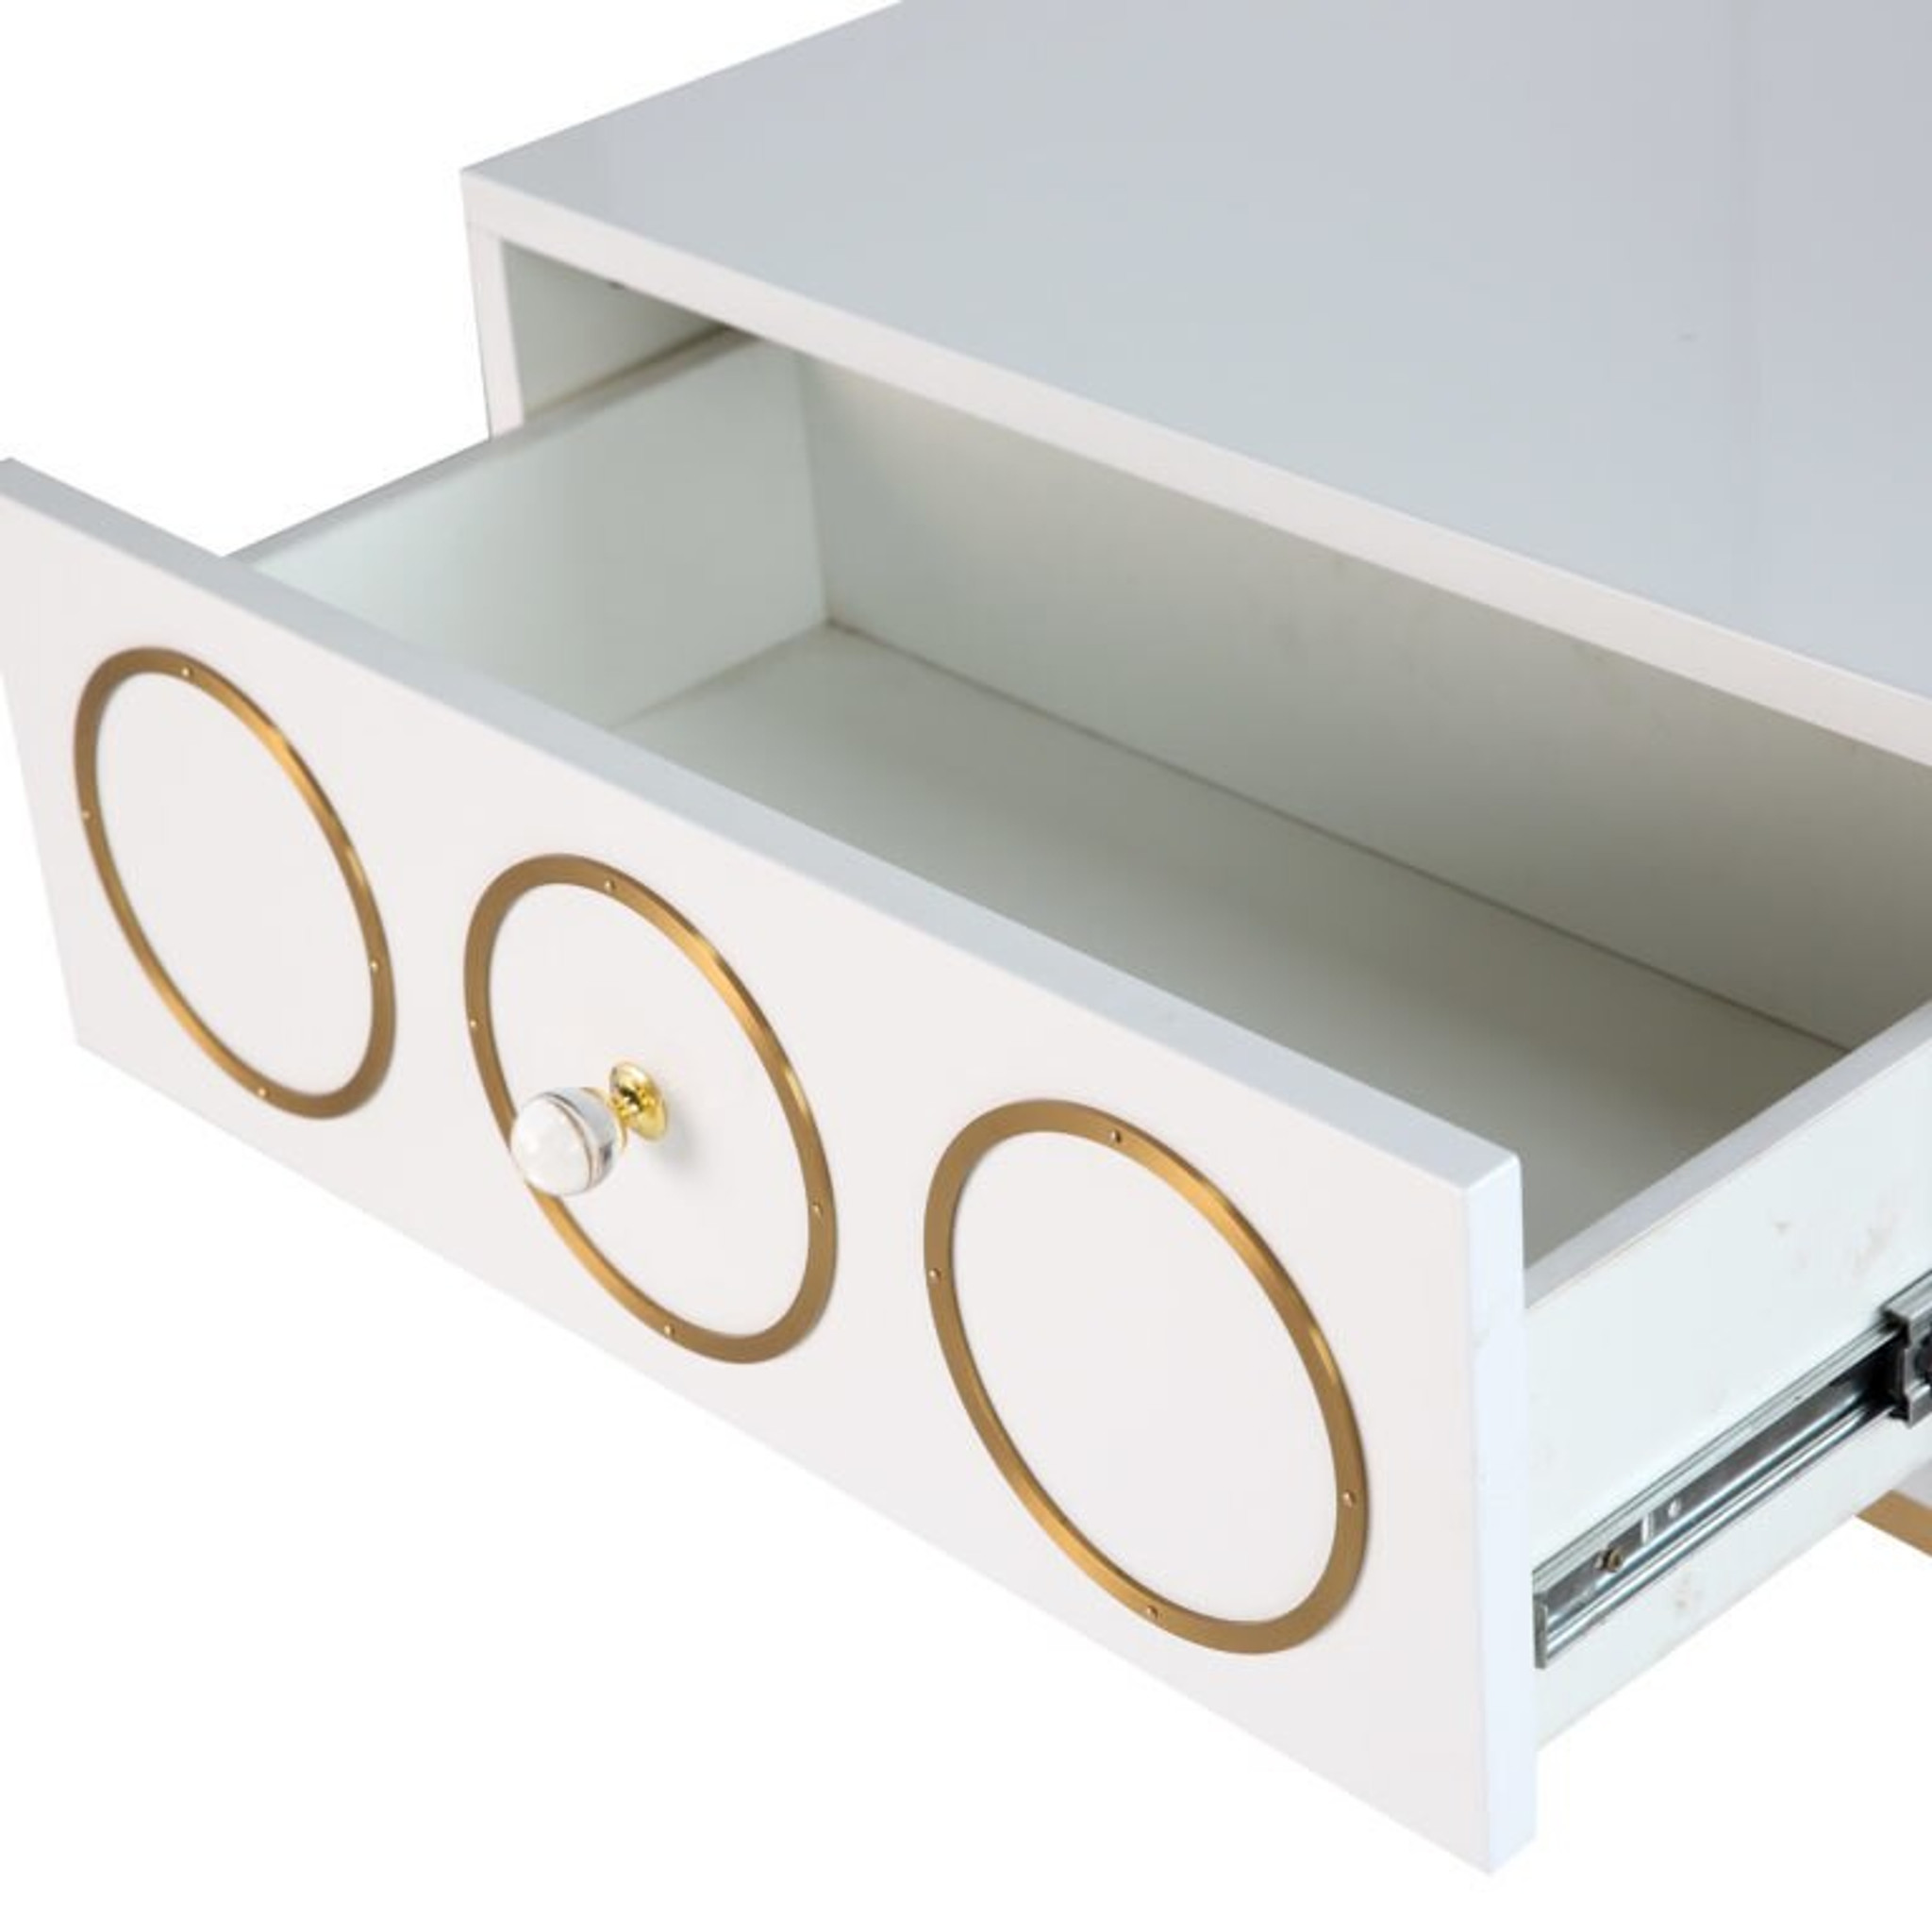 tov ella side table white nightstand one drawer storage gold legs clear acrylic hardware